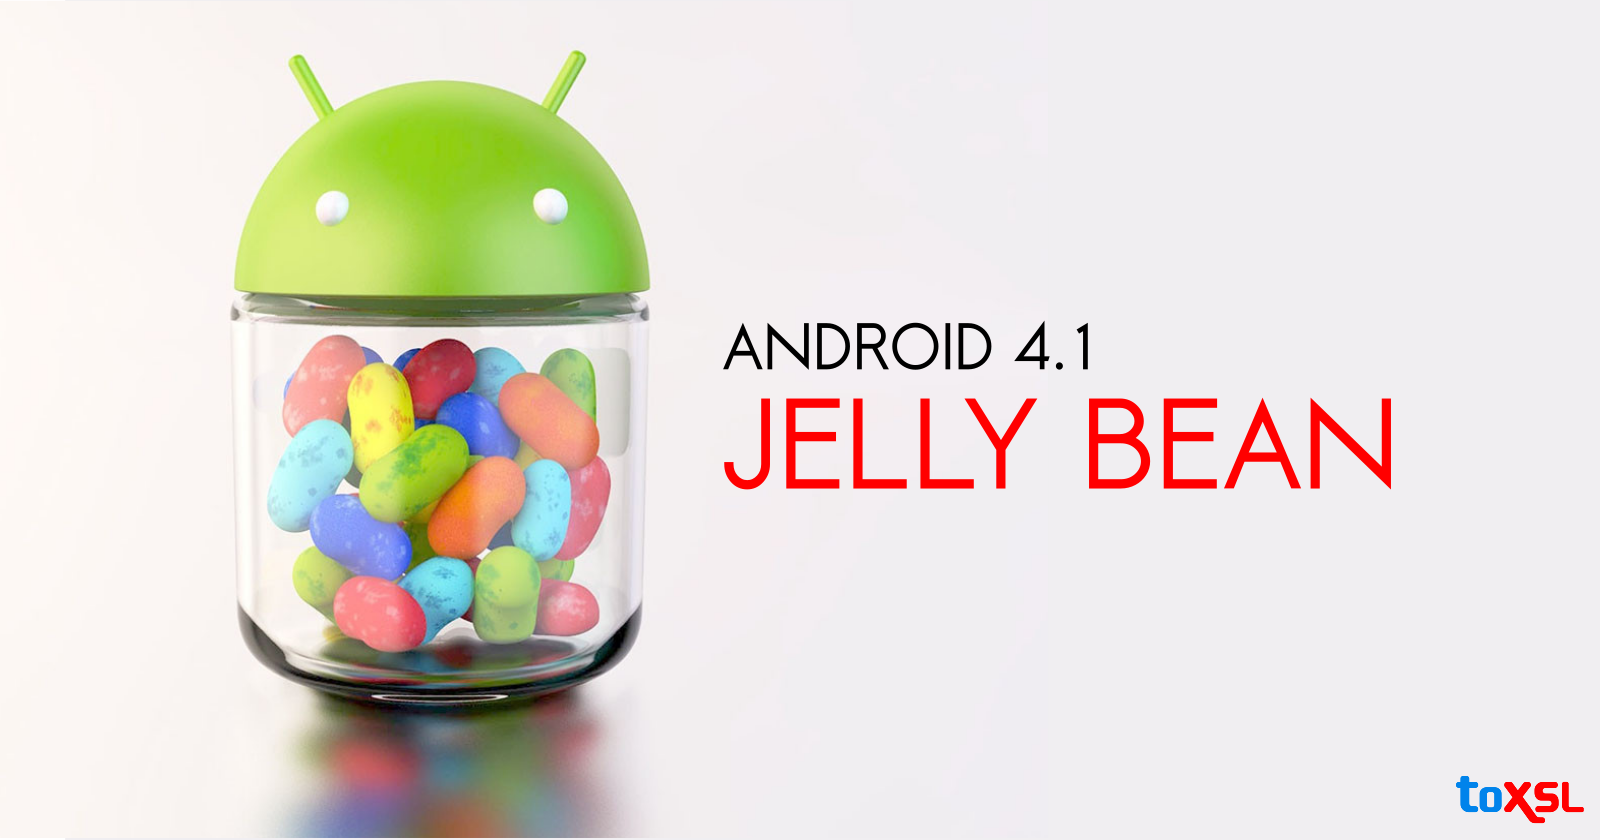 Google Introduced Android 4.1, Jelly Bean